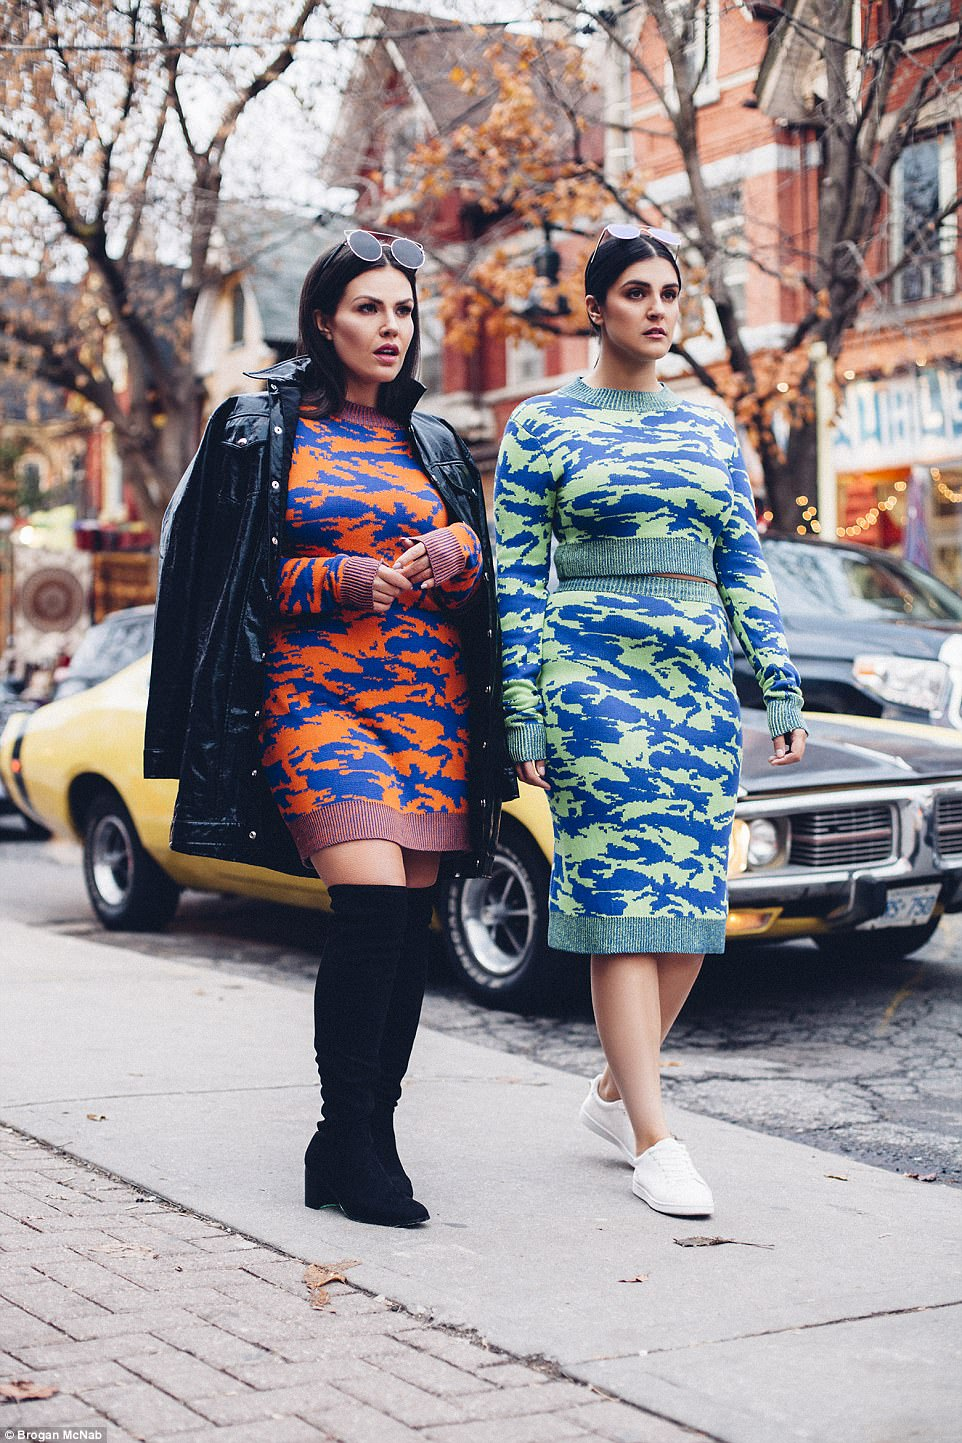 Plus-size and proud: In the shoot, the pair can be seen flaunting their curves in a series of bold, eye-catching cuts and colours that show off their voluptuous figures to perfection